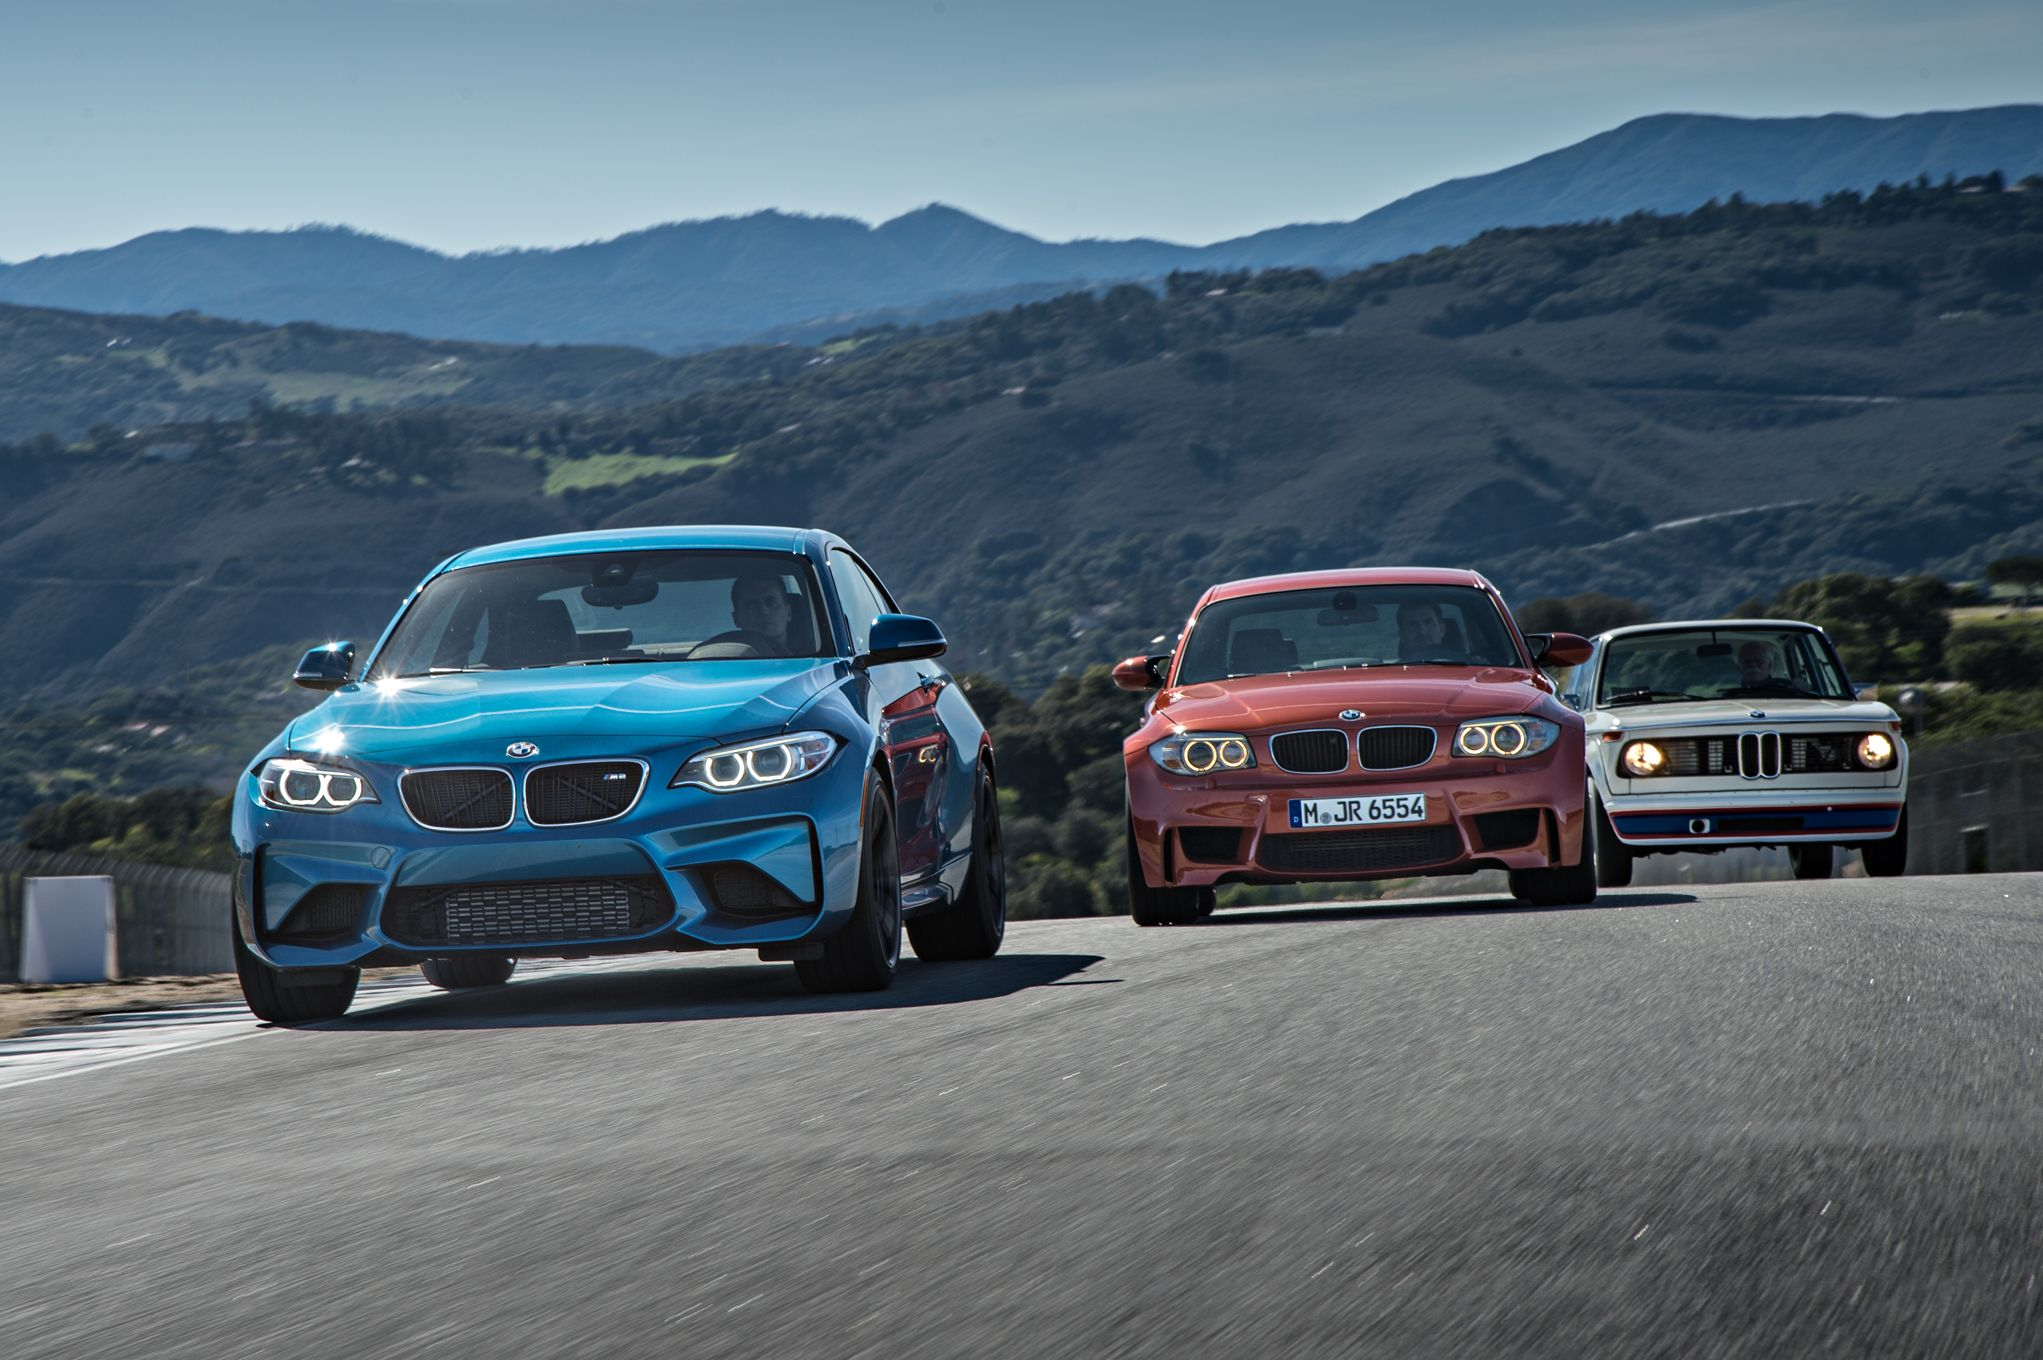 2016-bmw-m2-bmw-2002-turbo-and-bmw-1-series-m-coupe-front-three-quarter-in-motion-03.jpg